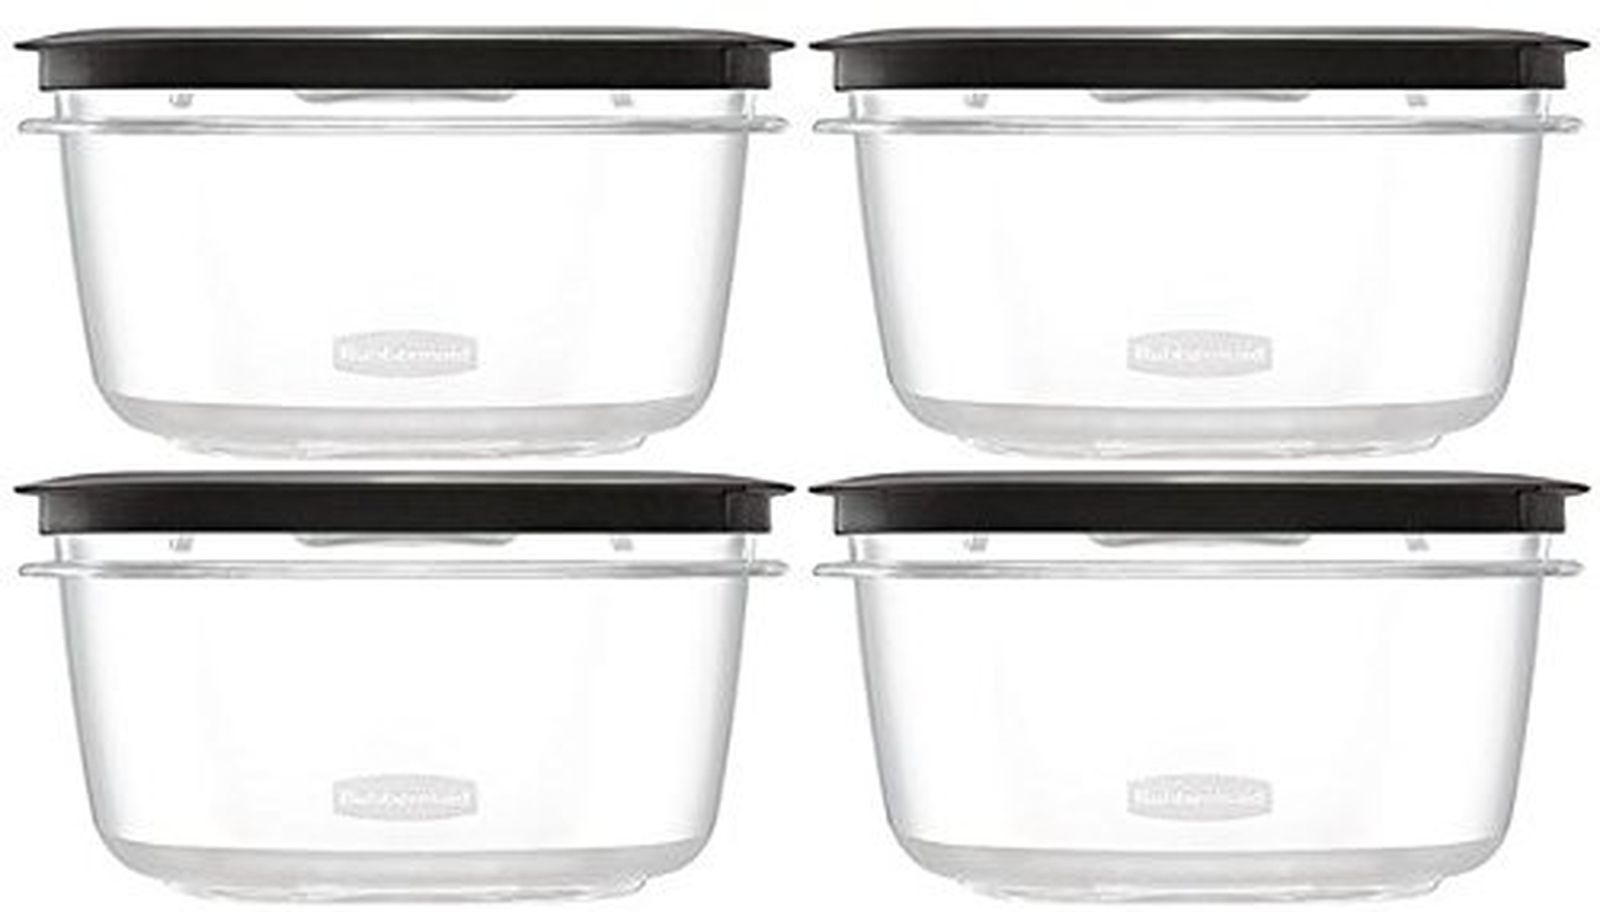 Rubbermaid Premier Food Storage Container, 4 Pack, 5 Cup, Grey 1